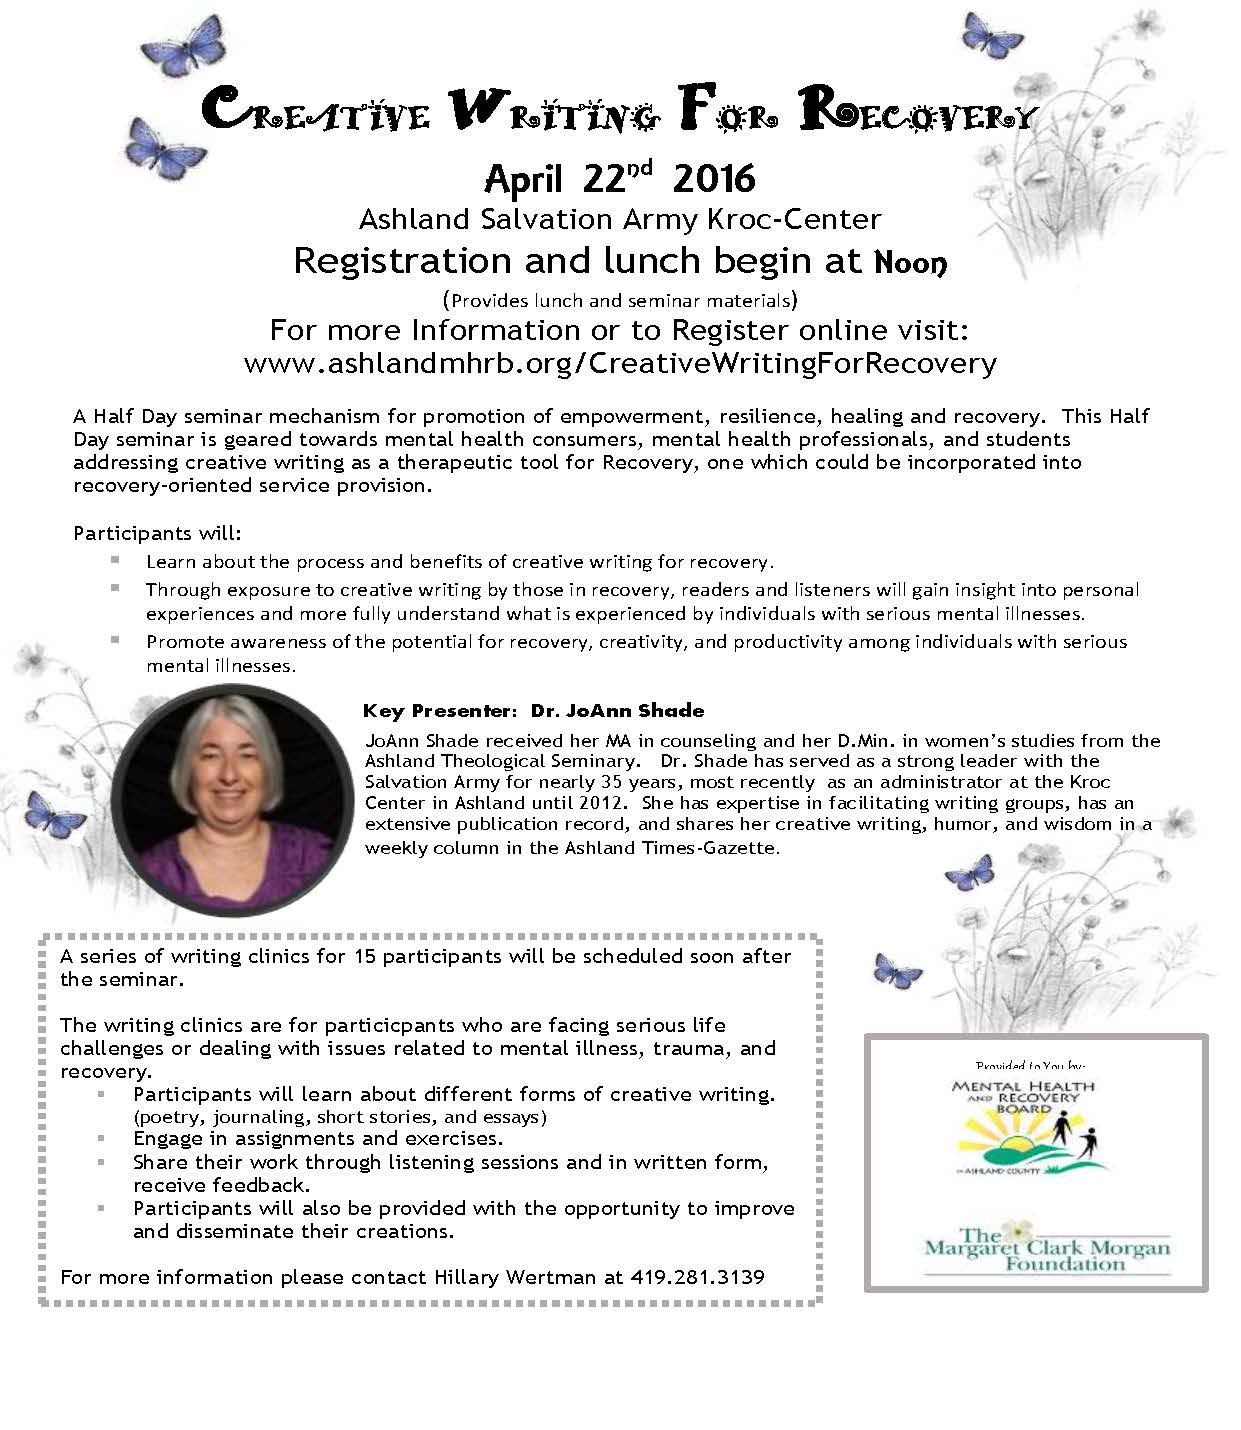 Creative Writing for Recovery - Ashland County MHRB